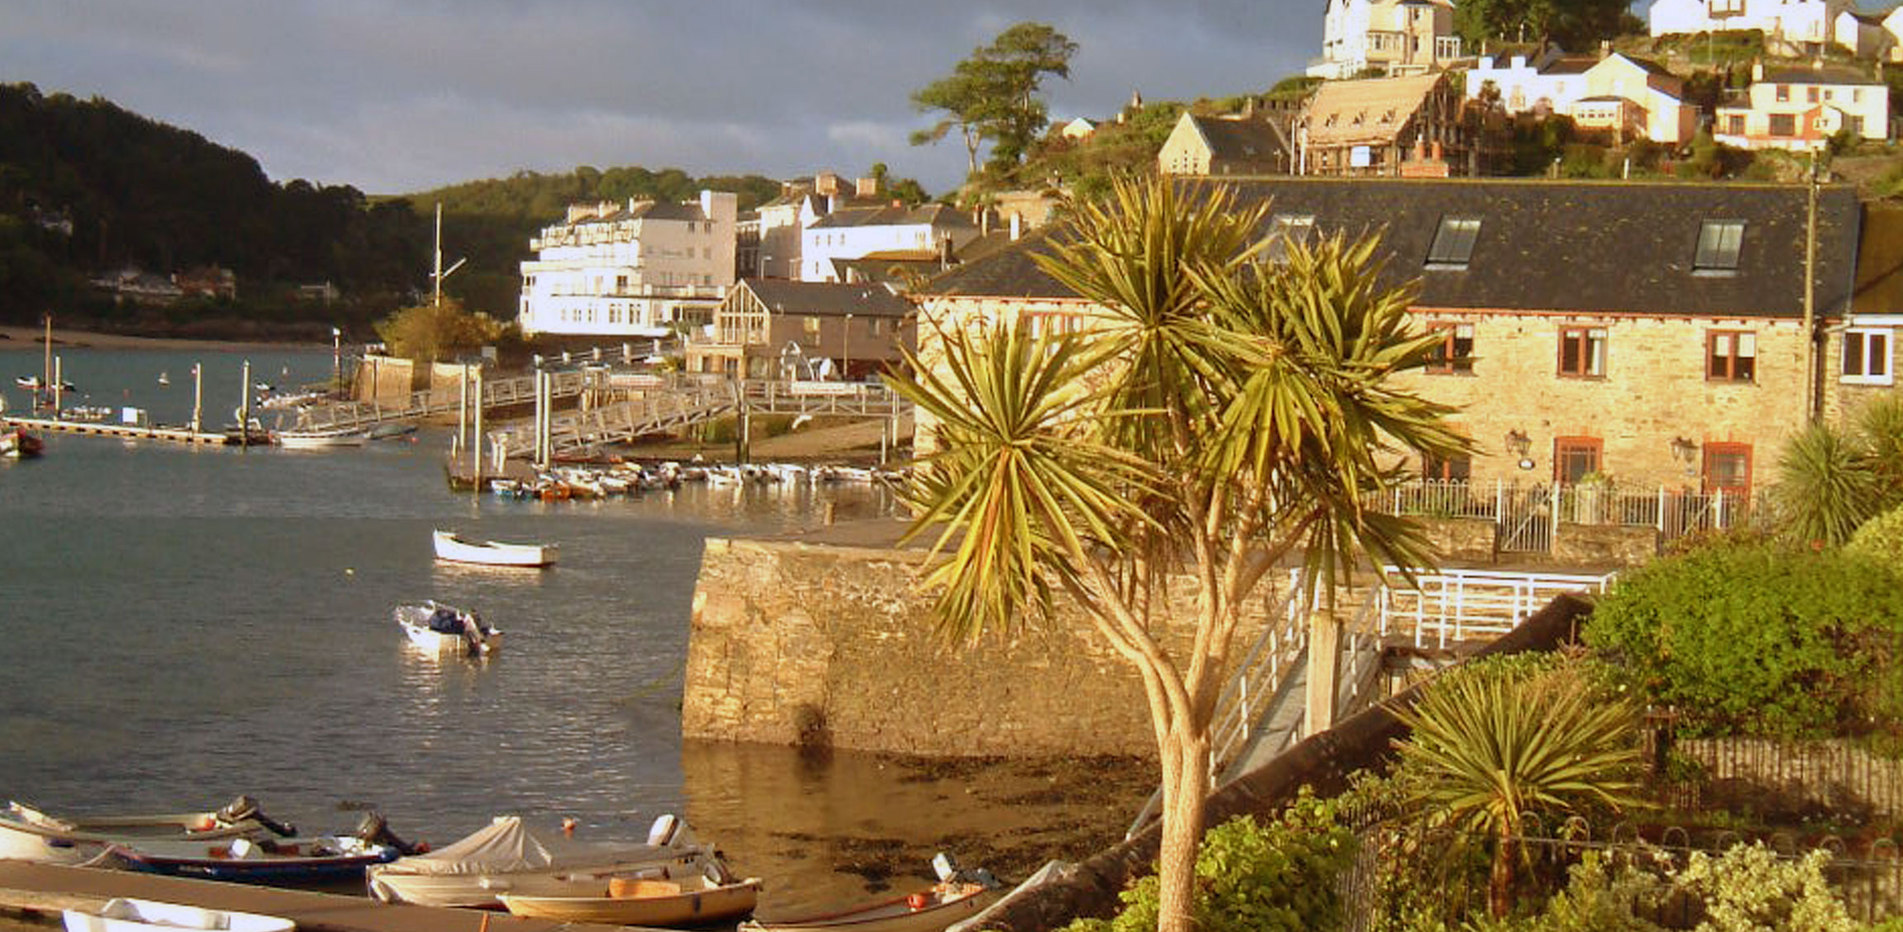 View towards Salcombe from the cottage